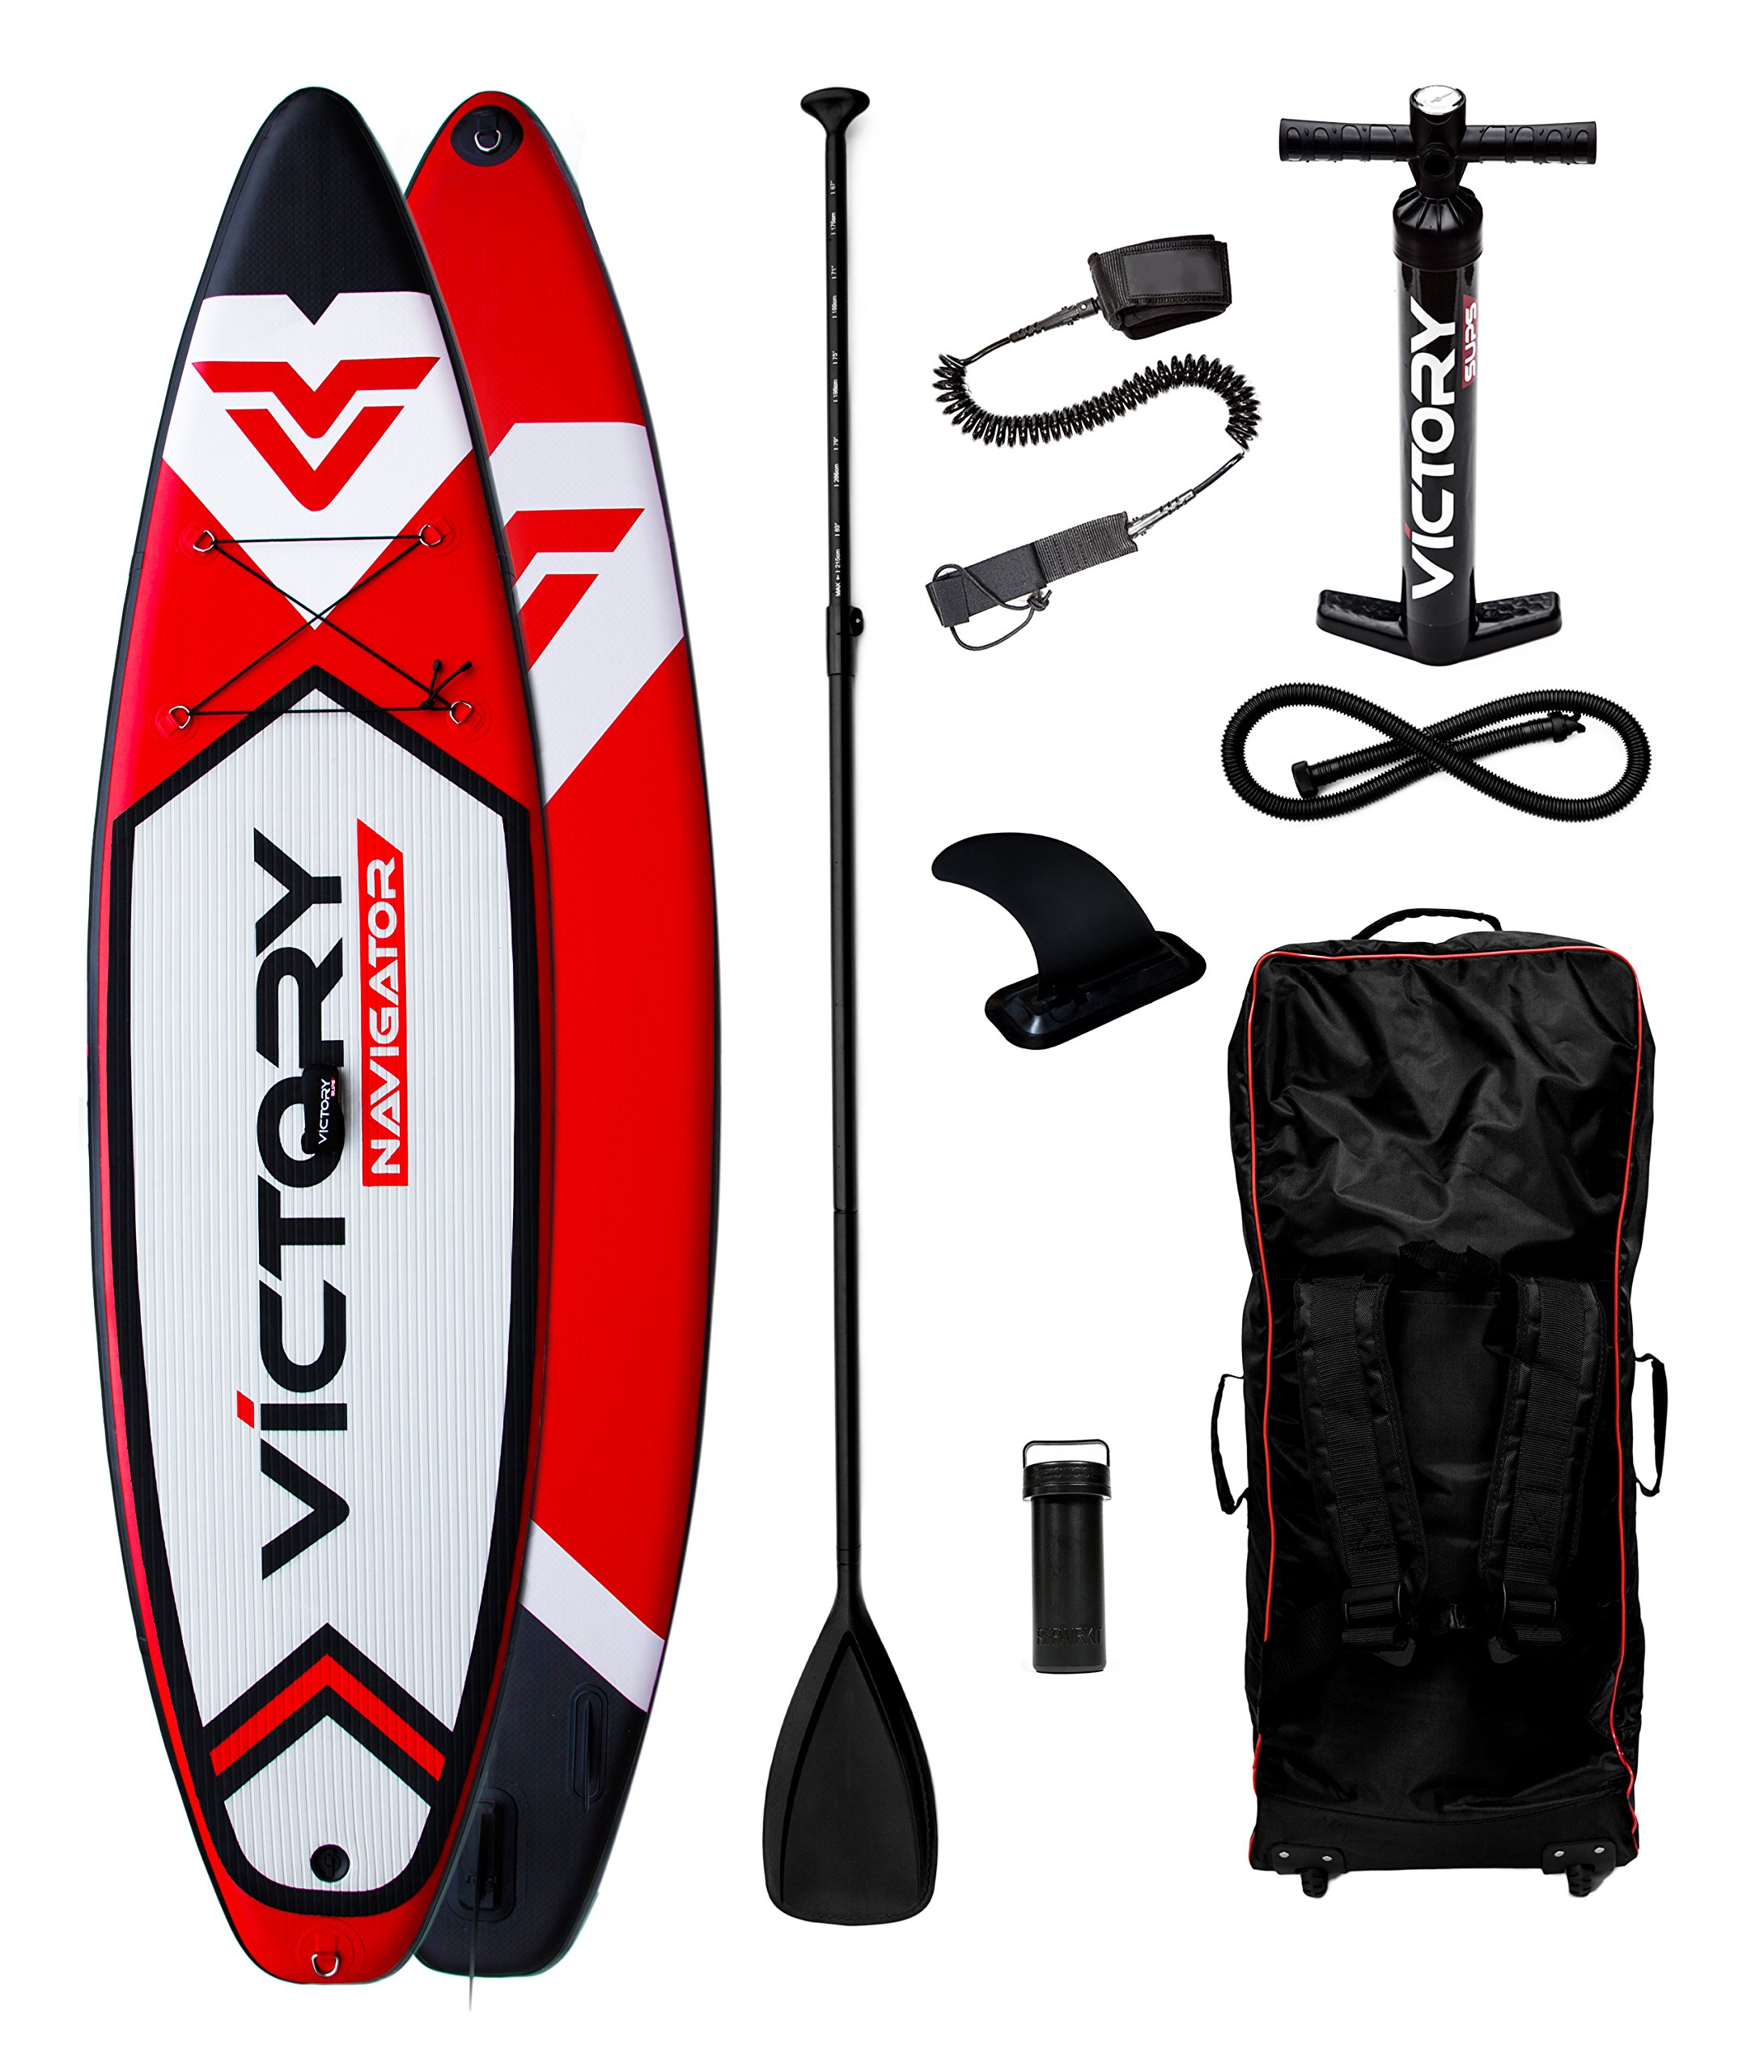 Victory Navigator 10´6'' Inflatable Stand Up Paddleboard Set - 6'' Thick - Full package - 2 Year Warranty by Victory